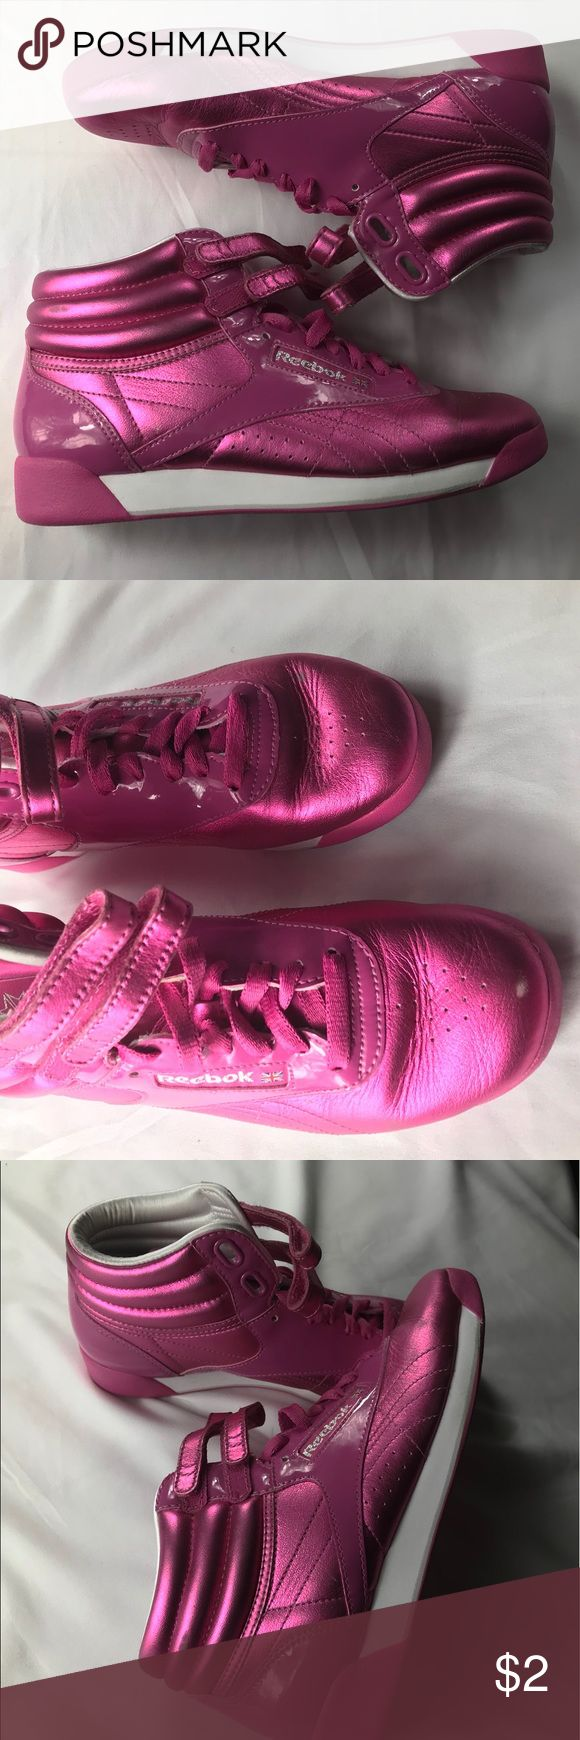 Reebok retro metallic pink vintage sneakers size 7 Loved a little retro Reebok high top sneakers. Good condition with discoloration on toe as slight imperfection. Pet free smoke free home. Offers welcome. Reebok Shoes Sneakers